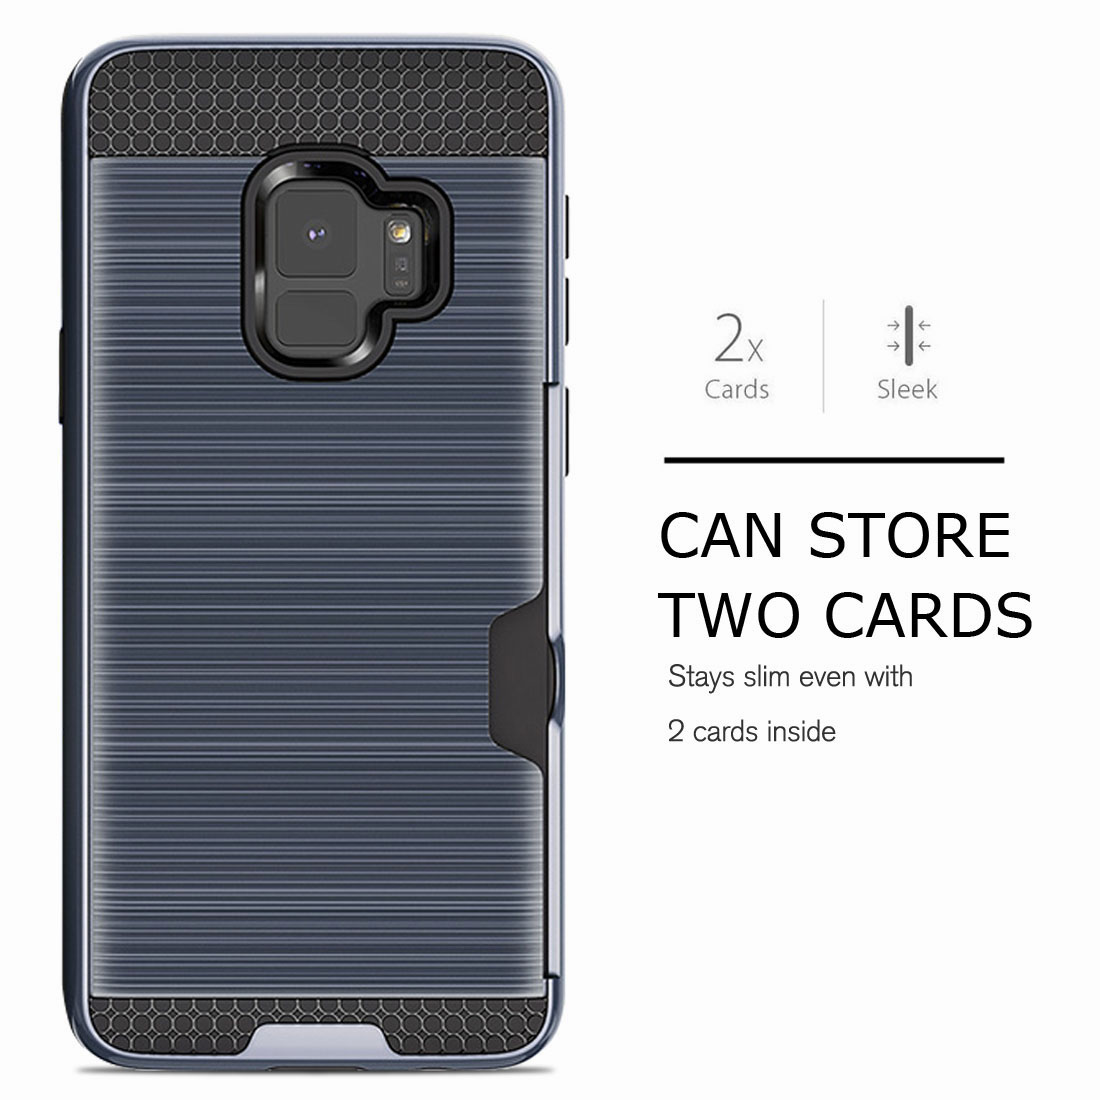 Credit-Card-Holder-Wallet-Case-For-Samsung-Galaxy-S6-S7-Edge-S8-S9-Note-4-5-8